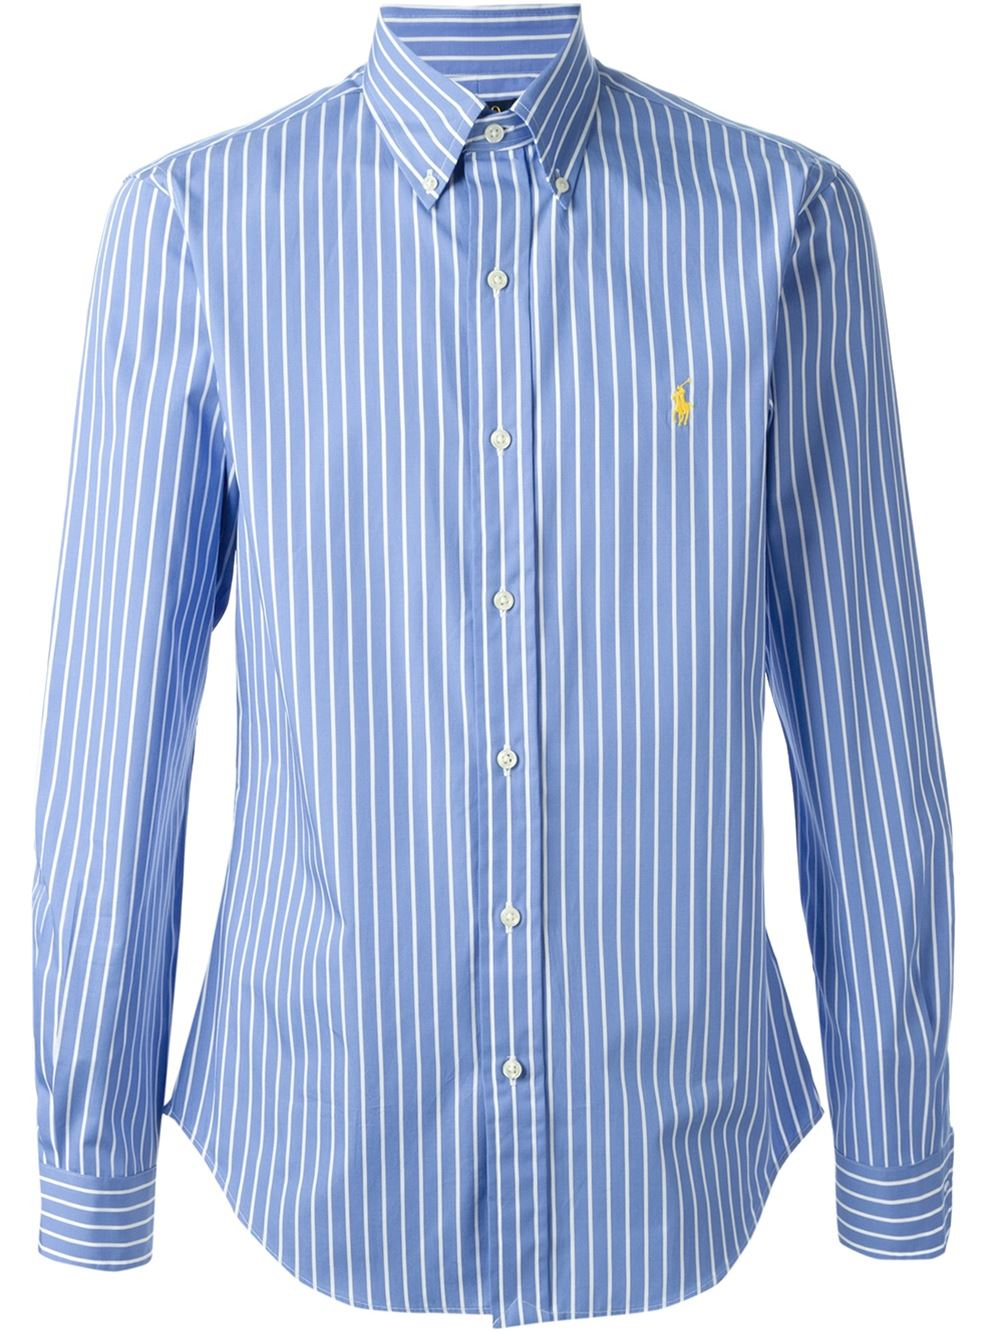 Polo ralph lauren striped shirt in blue for men lyst for Blue striped shirt mens